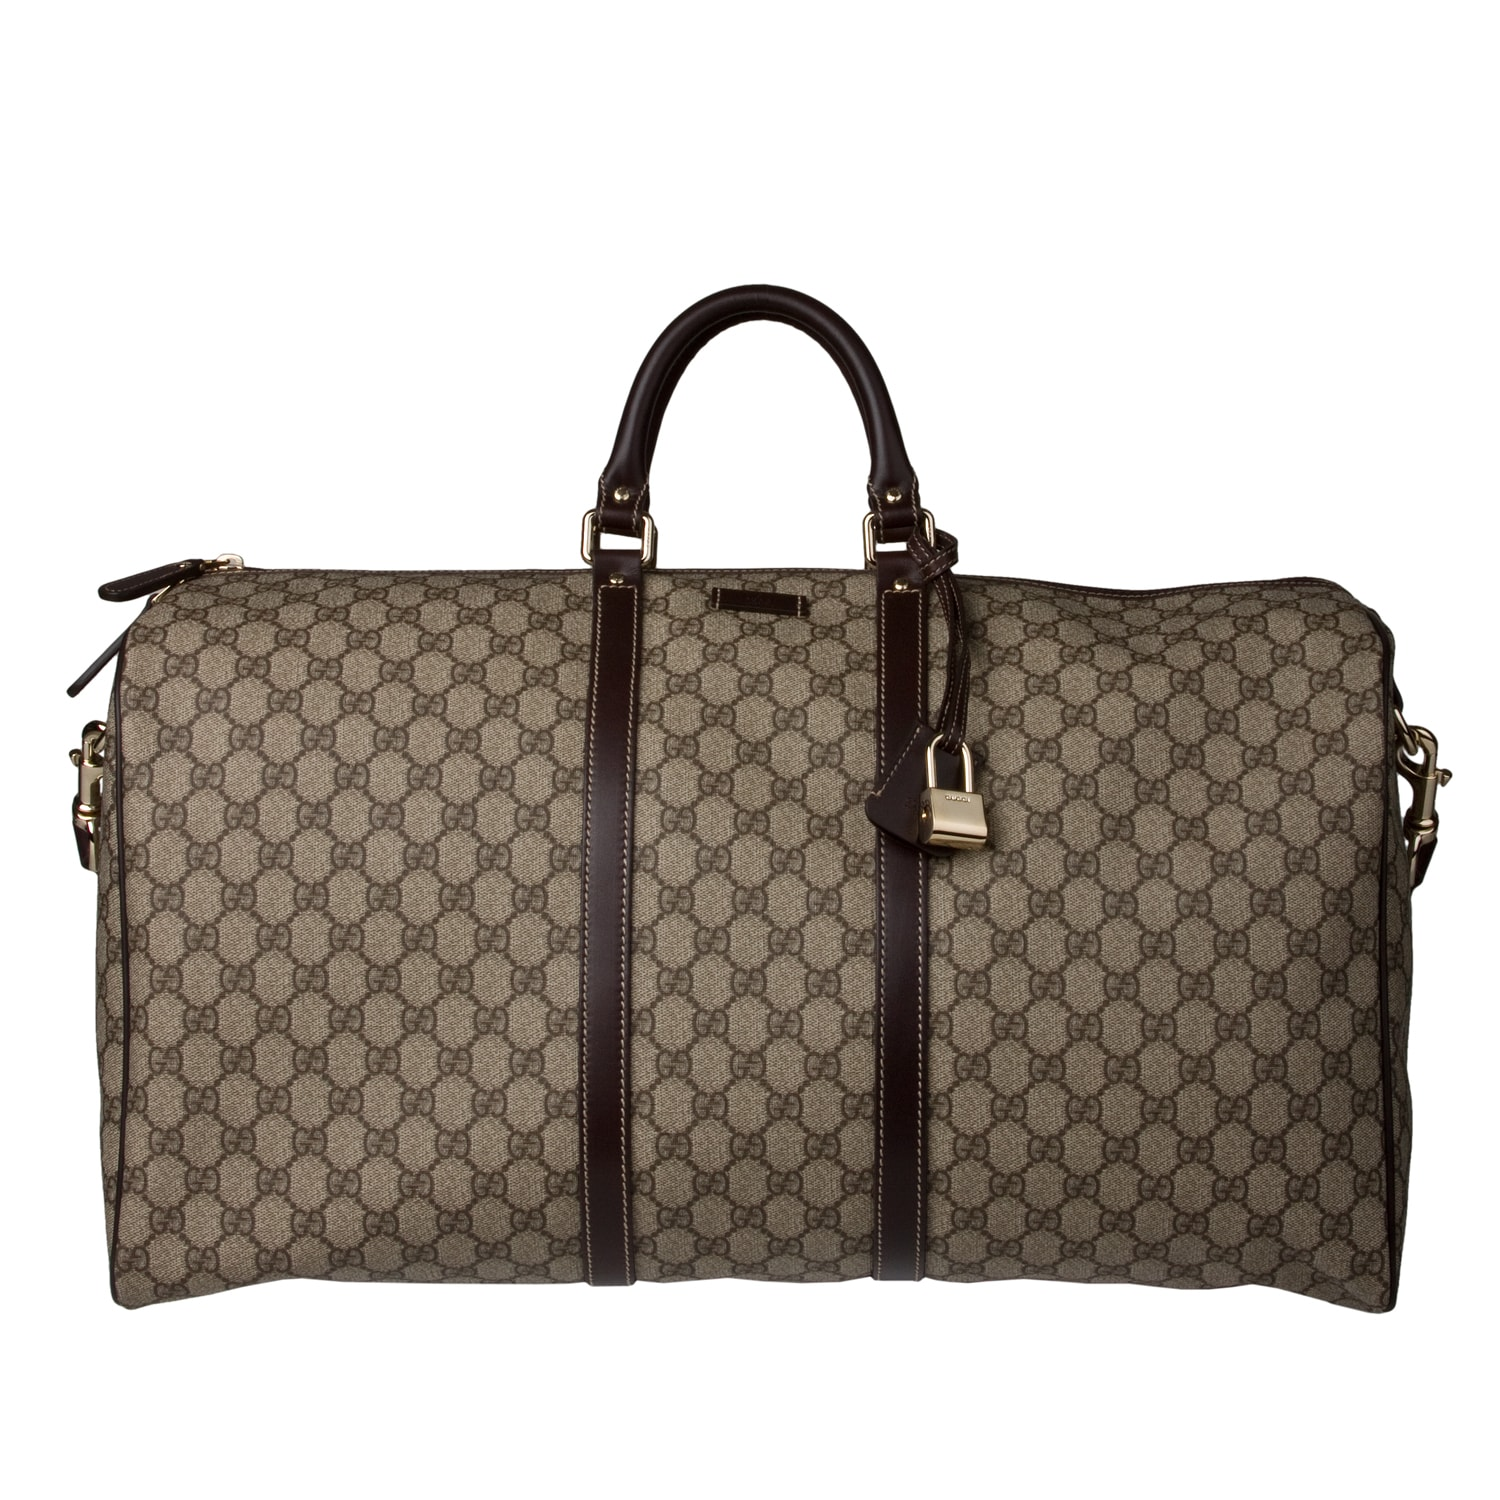 gucci outlet online reviews